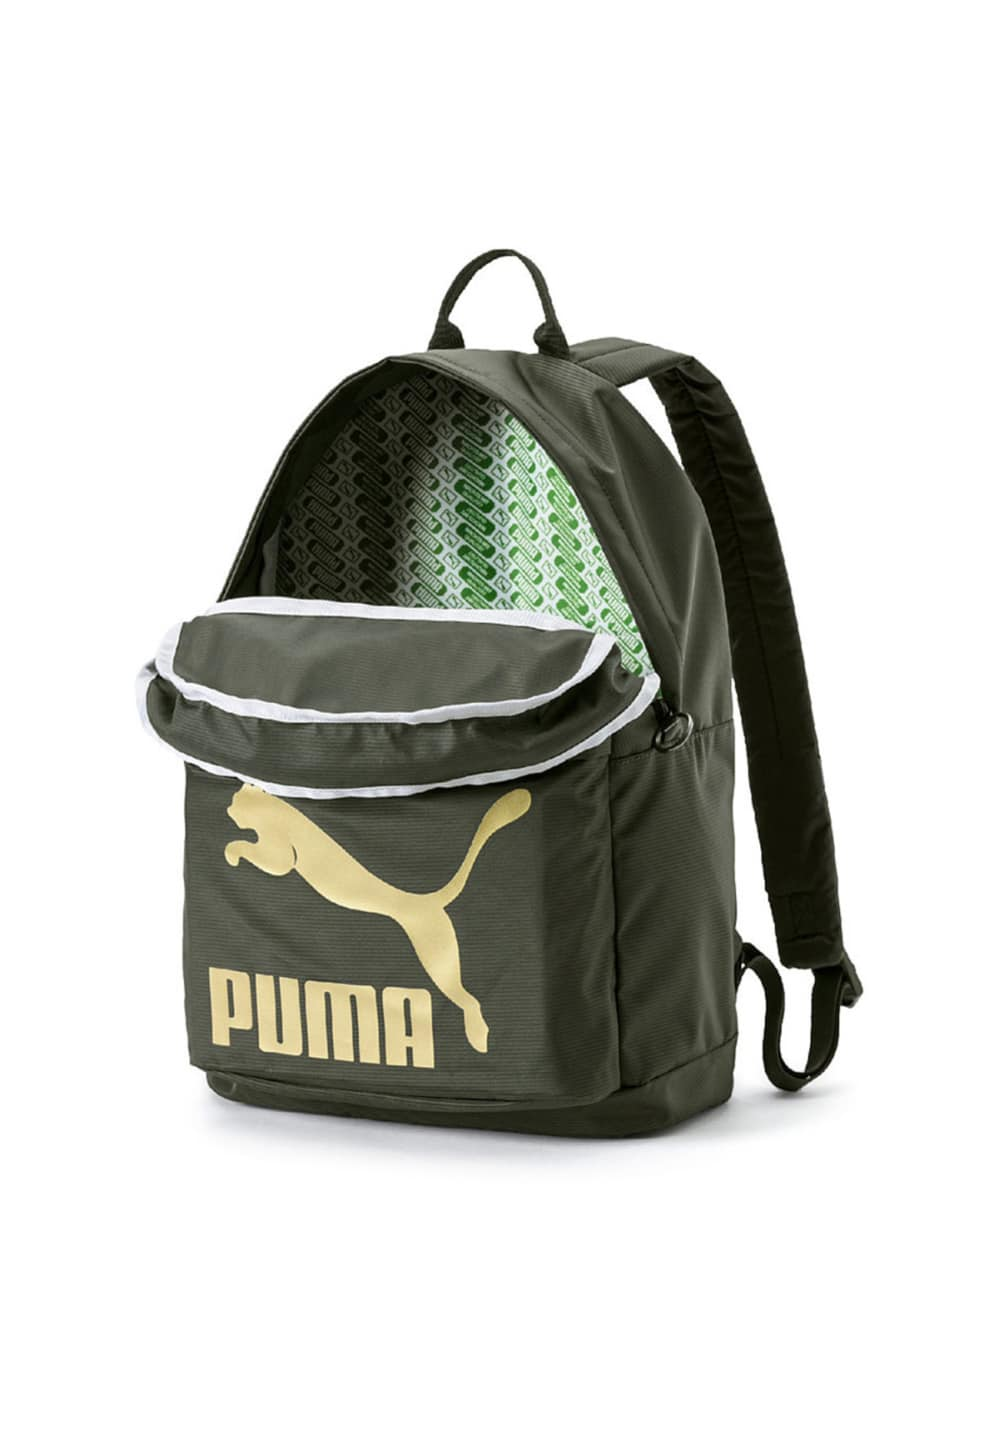 Puma Originals Backpack - Backpacks - Green  4e9097609f3c4